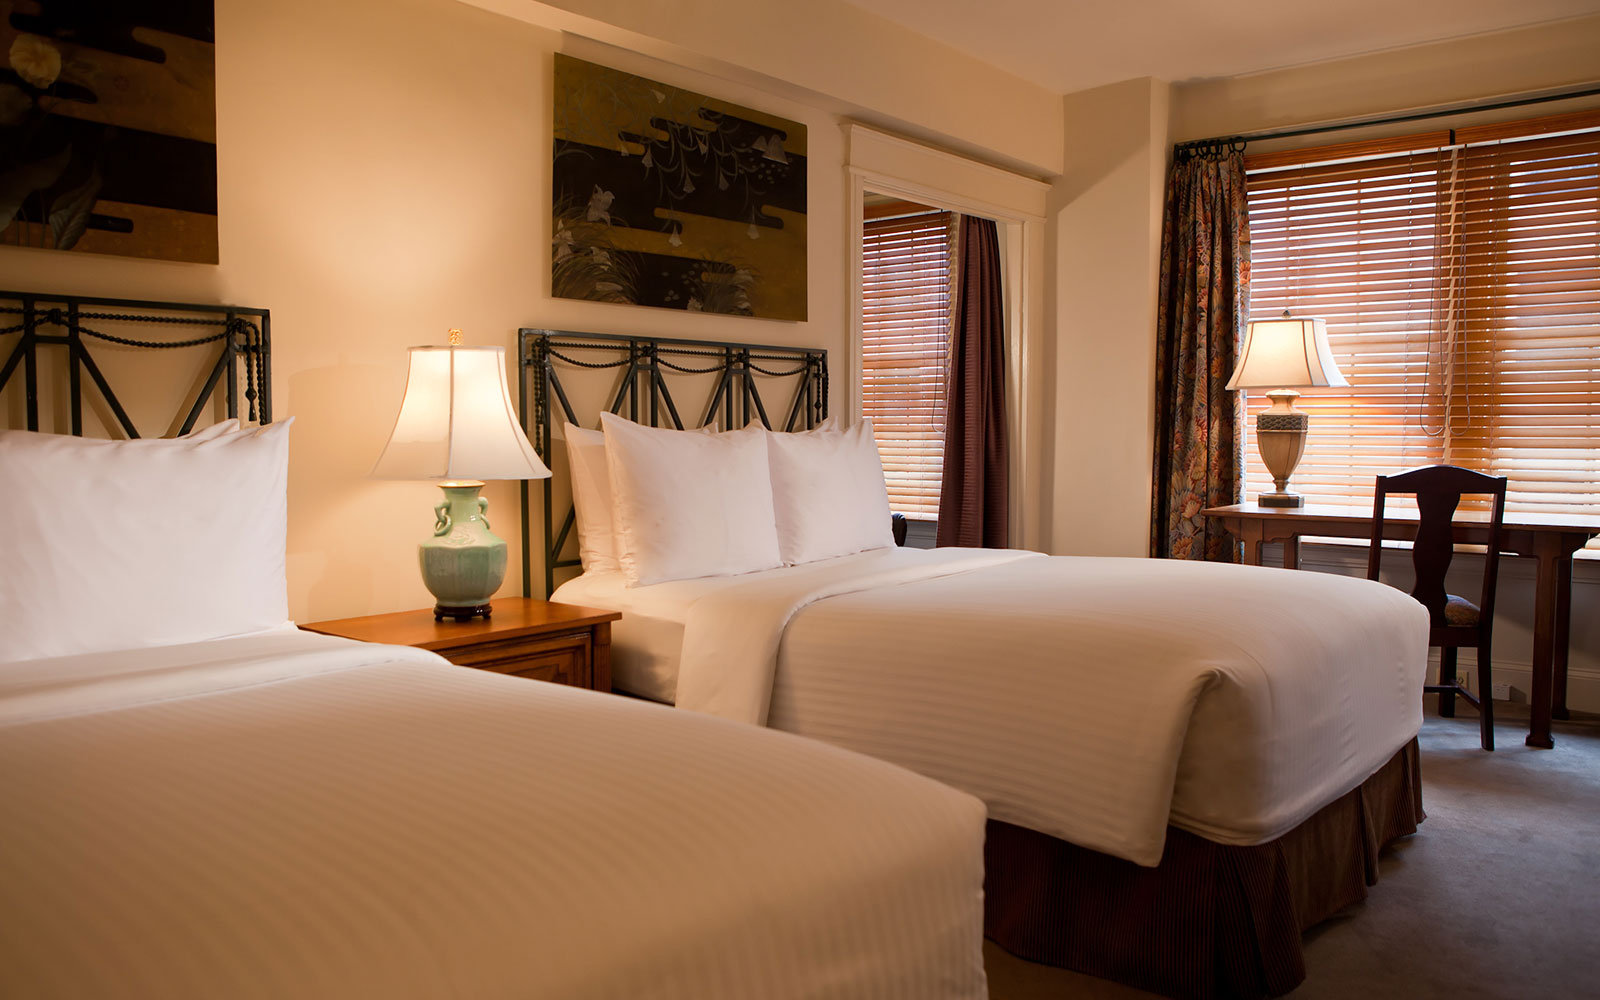 Sealy Mattress Reviews >> Luxurious Washington, DC Boutique Hotel Rooms - Hotel Lombardy